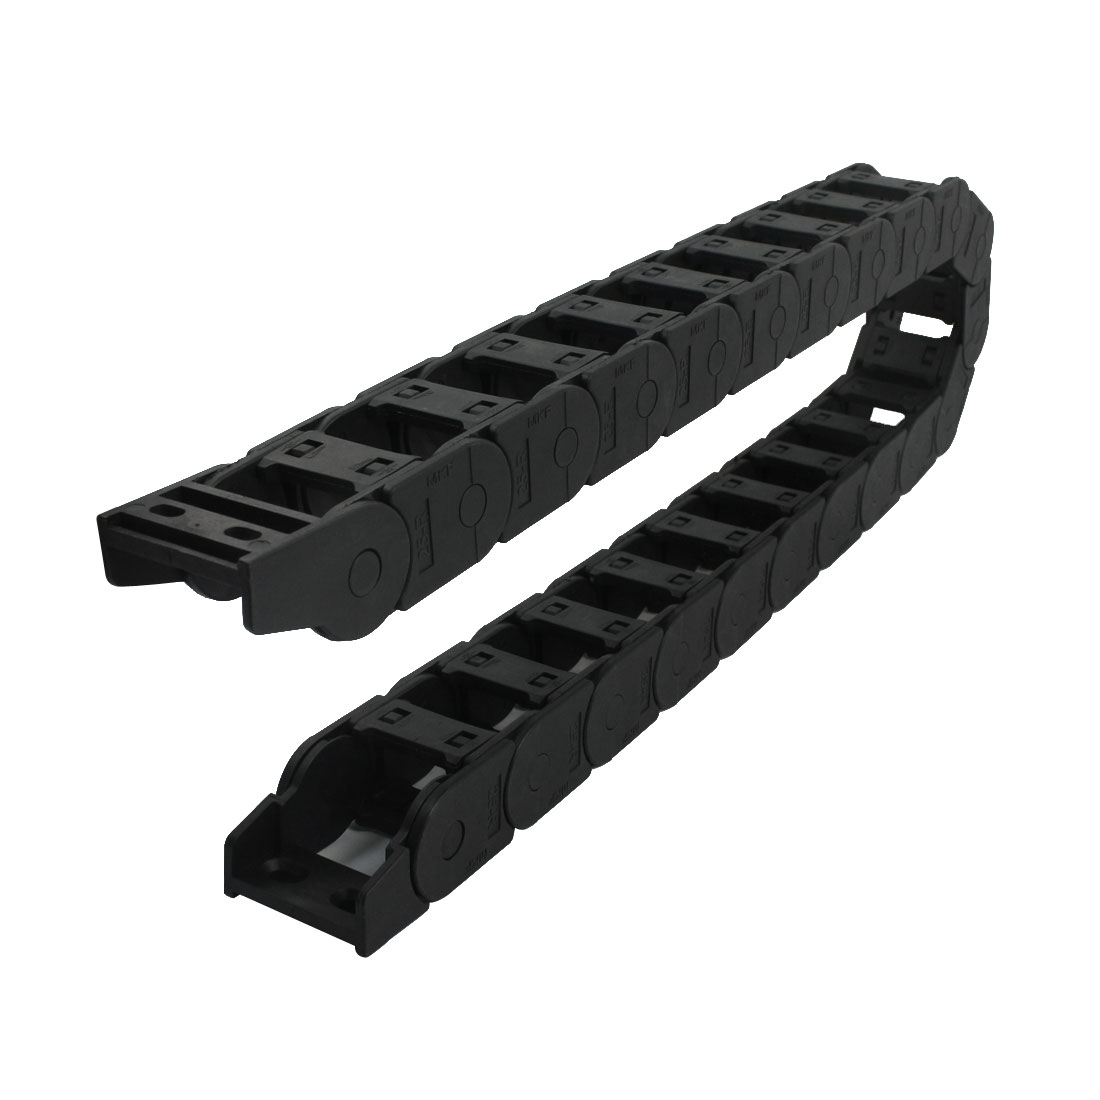 Plastic Towline Cable Carrier Drag Chain Connector 38mm x 25mm